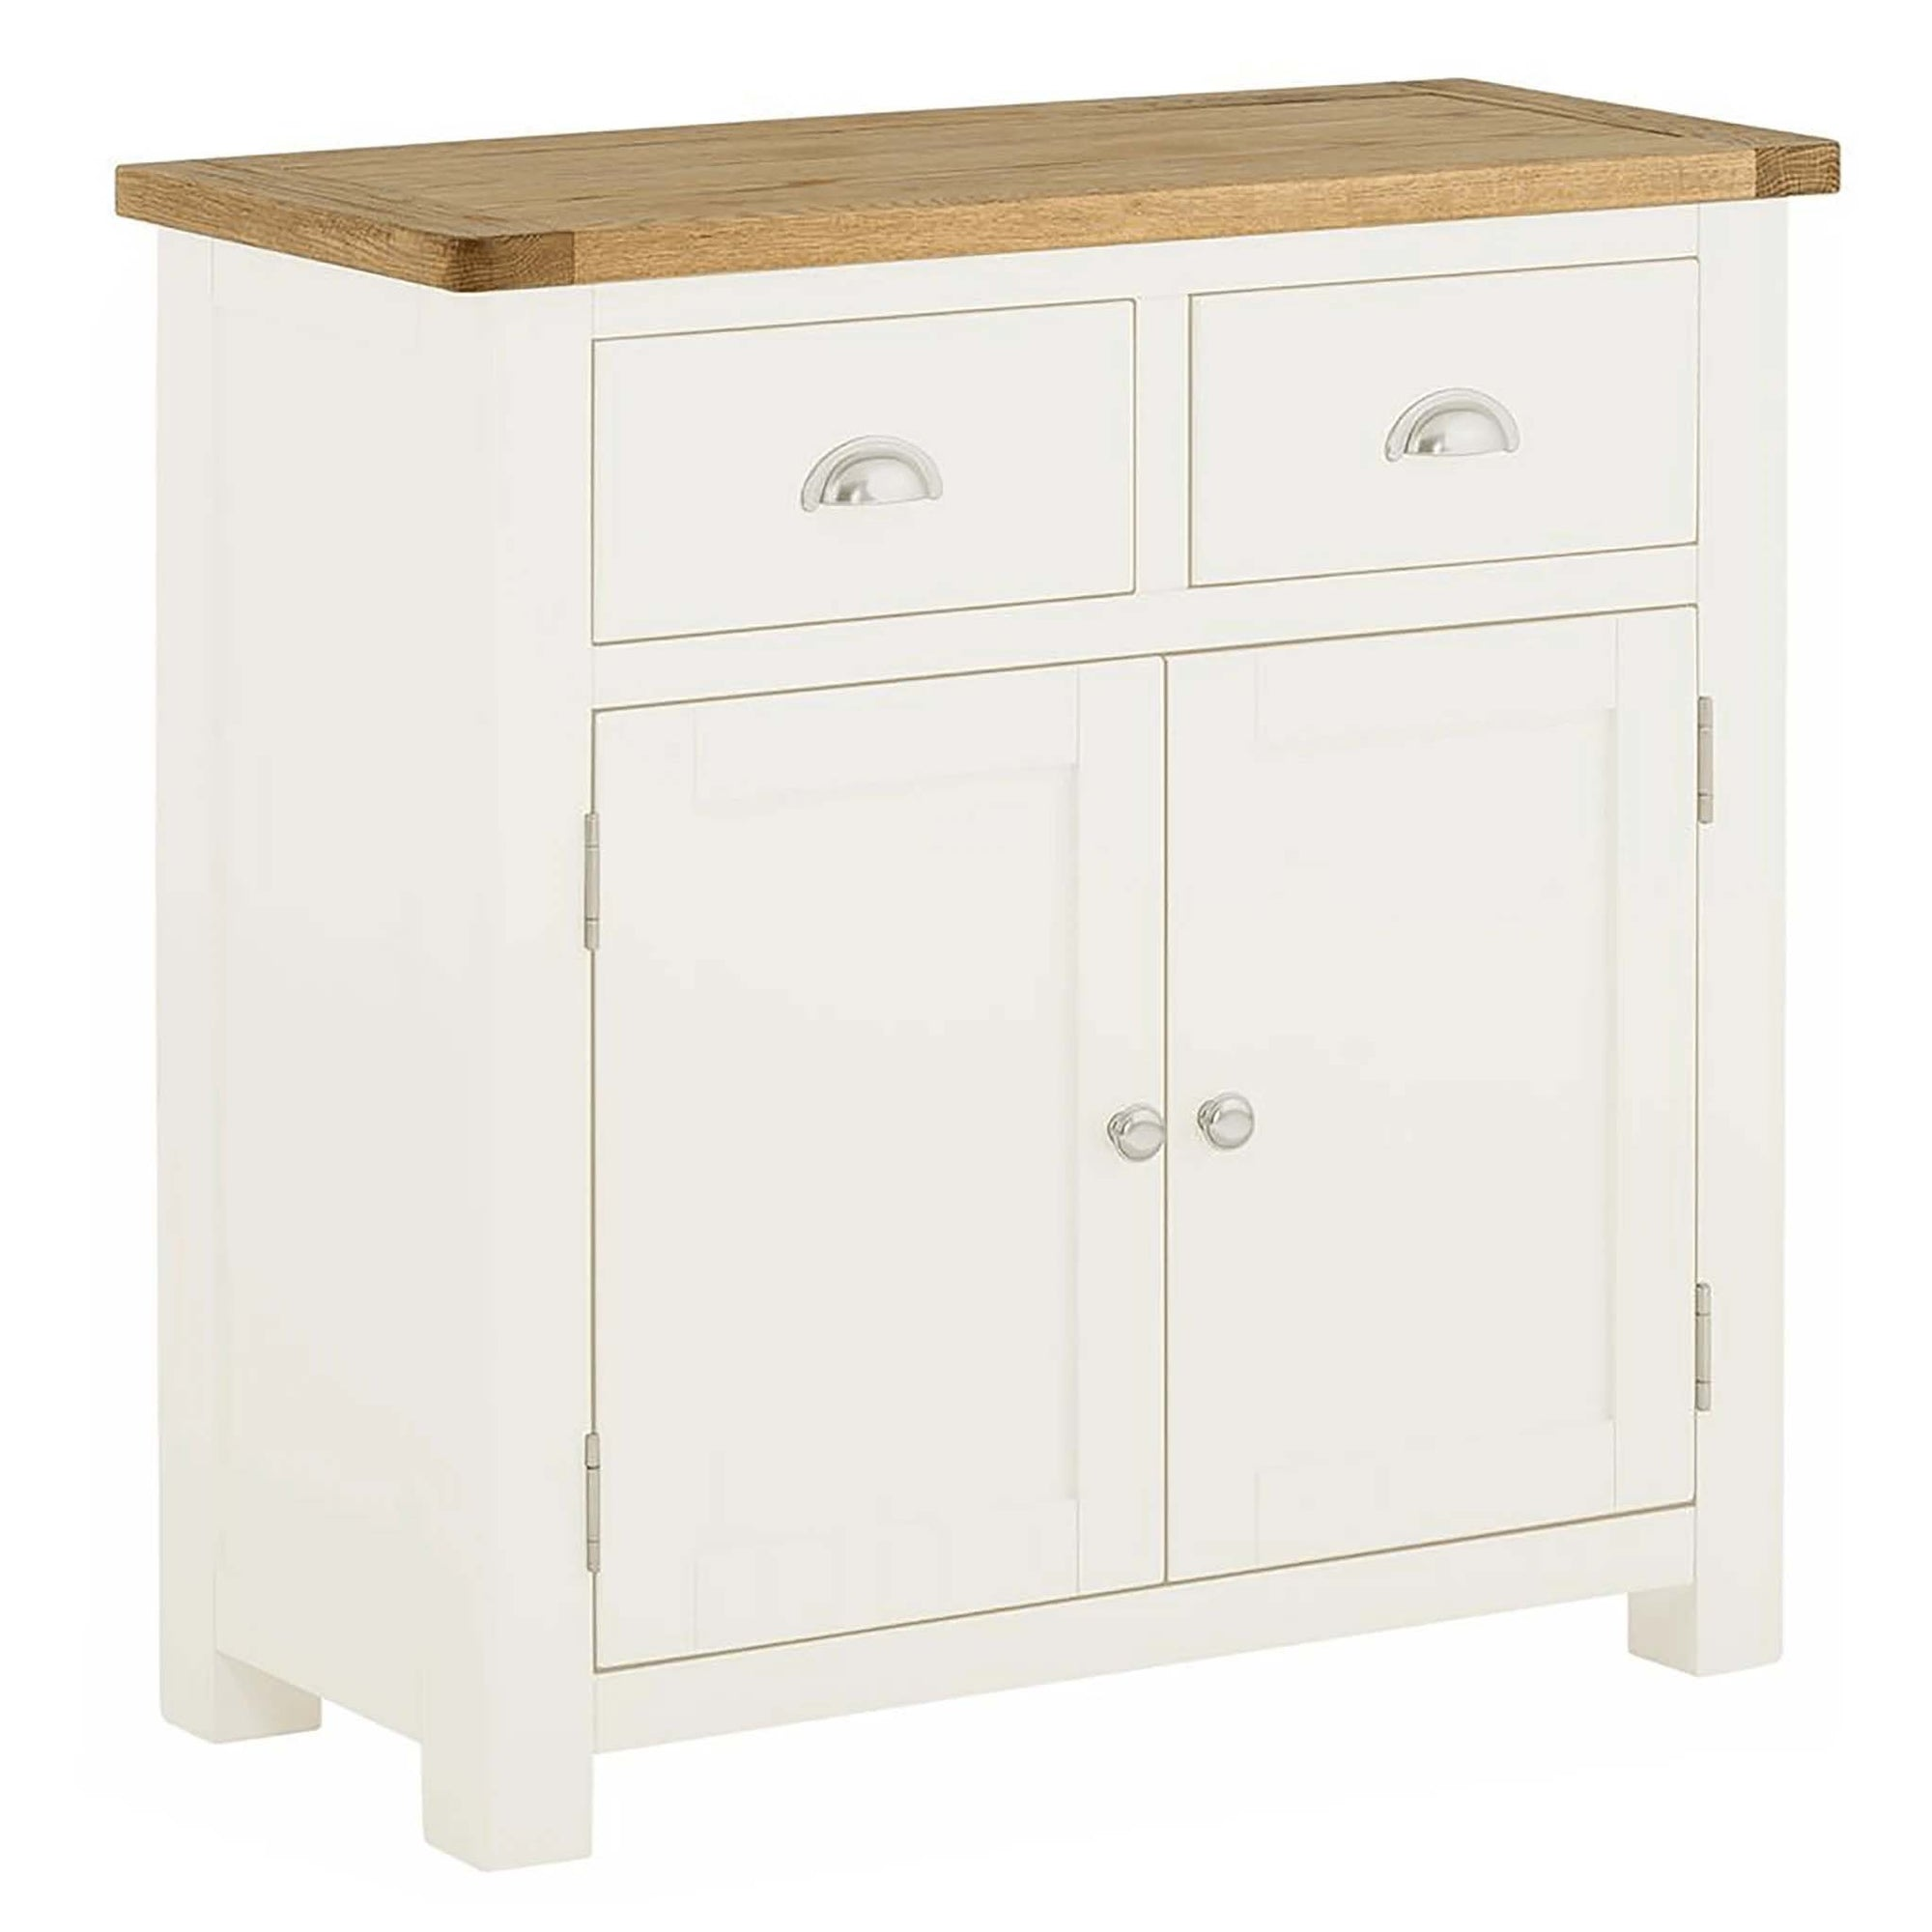 The Padstow White Small 2 Door Sideboard Cabinet with Oak Top from Roseland Furniture